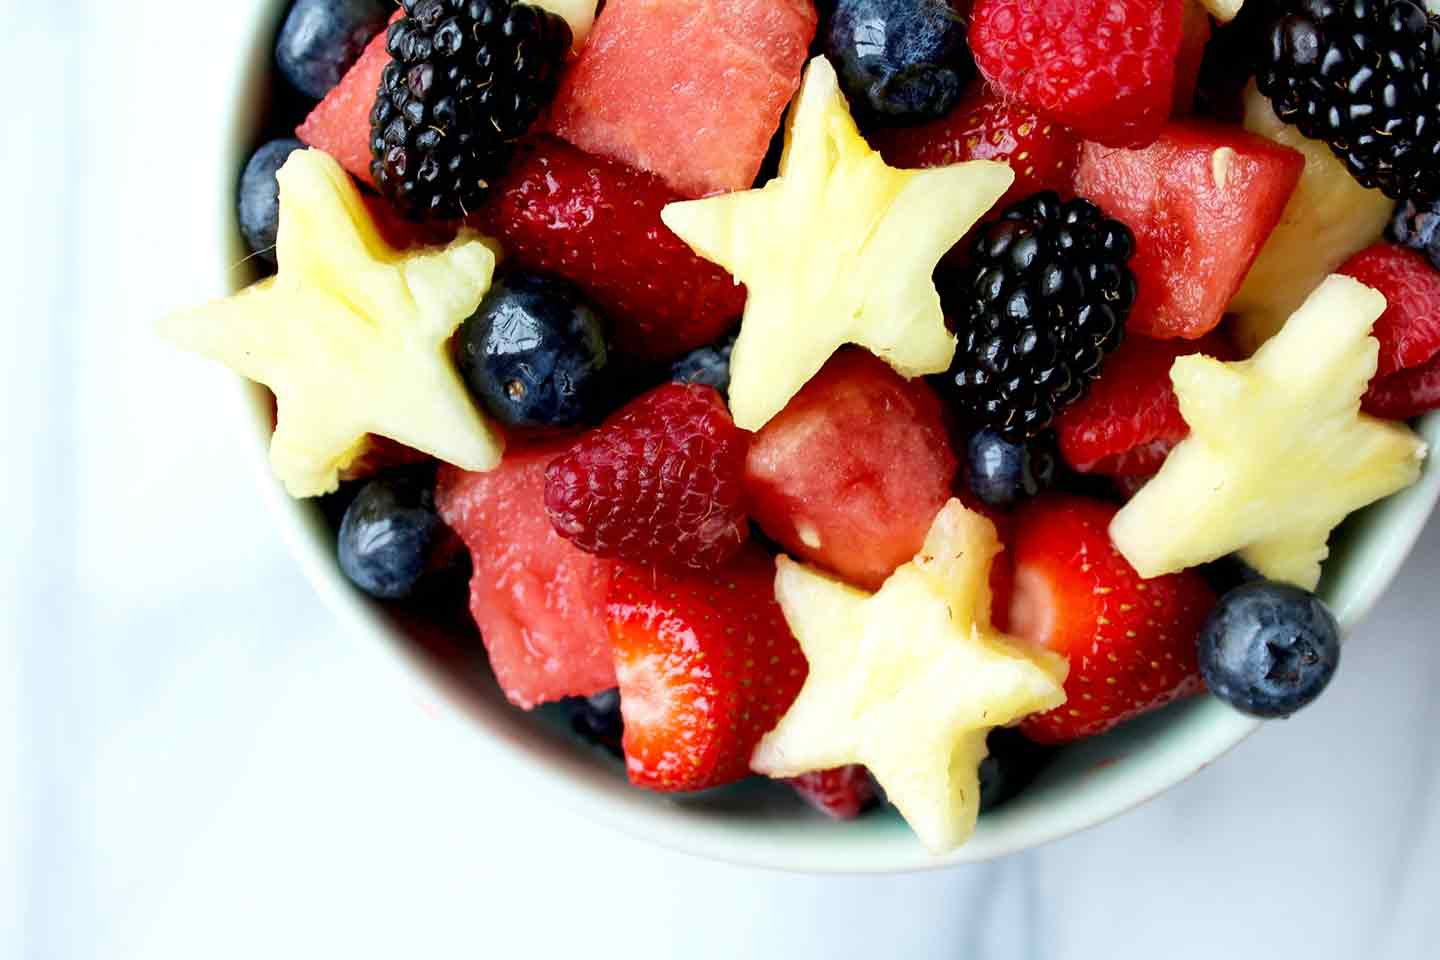 Close up of Red, White and Blue Fruit Salad from overhead, featuring strawberries, blackberries, blueberries, pineapple and watermelon